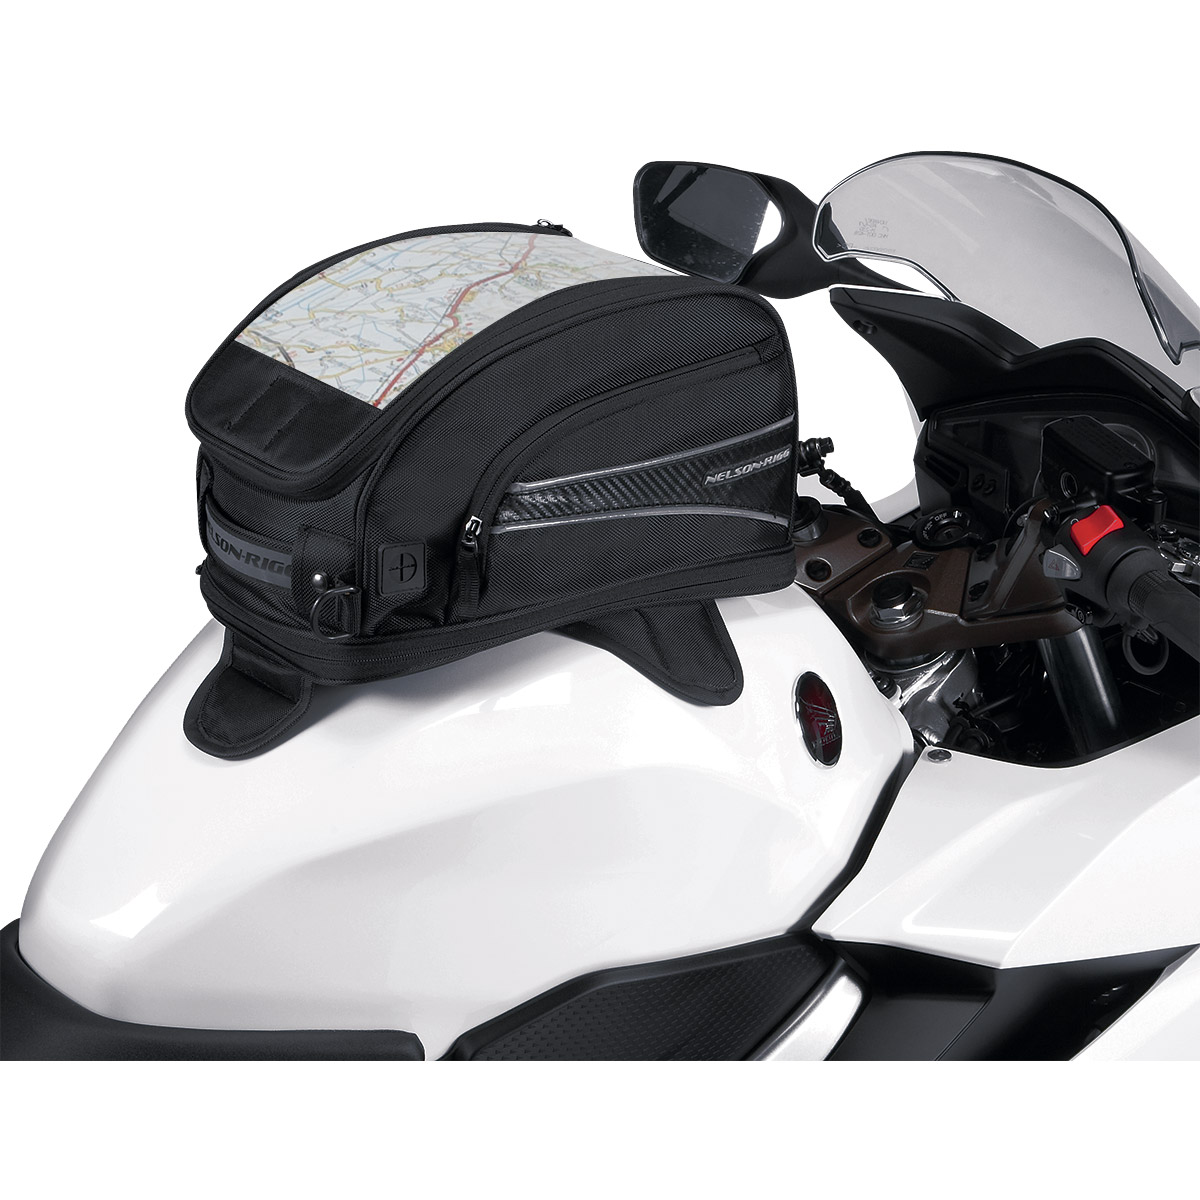 Nelson-Rigg Journey Mini Tank Bag with Magnetic Mount